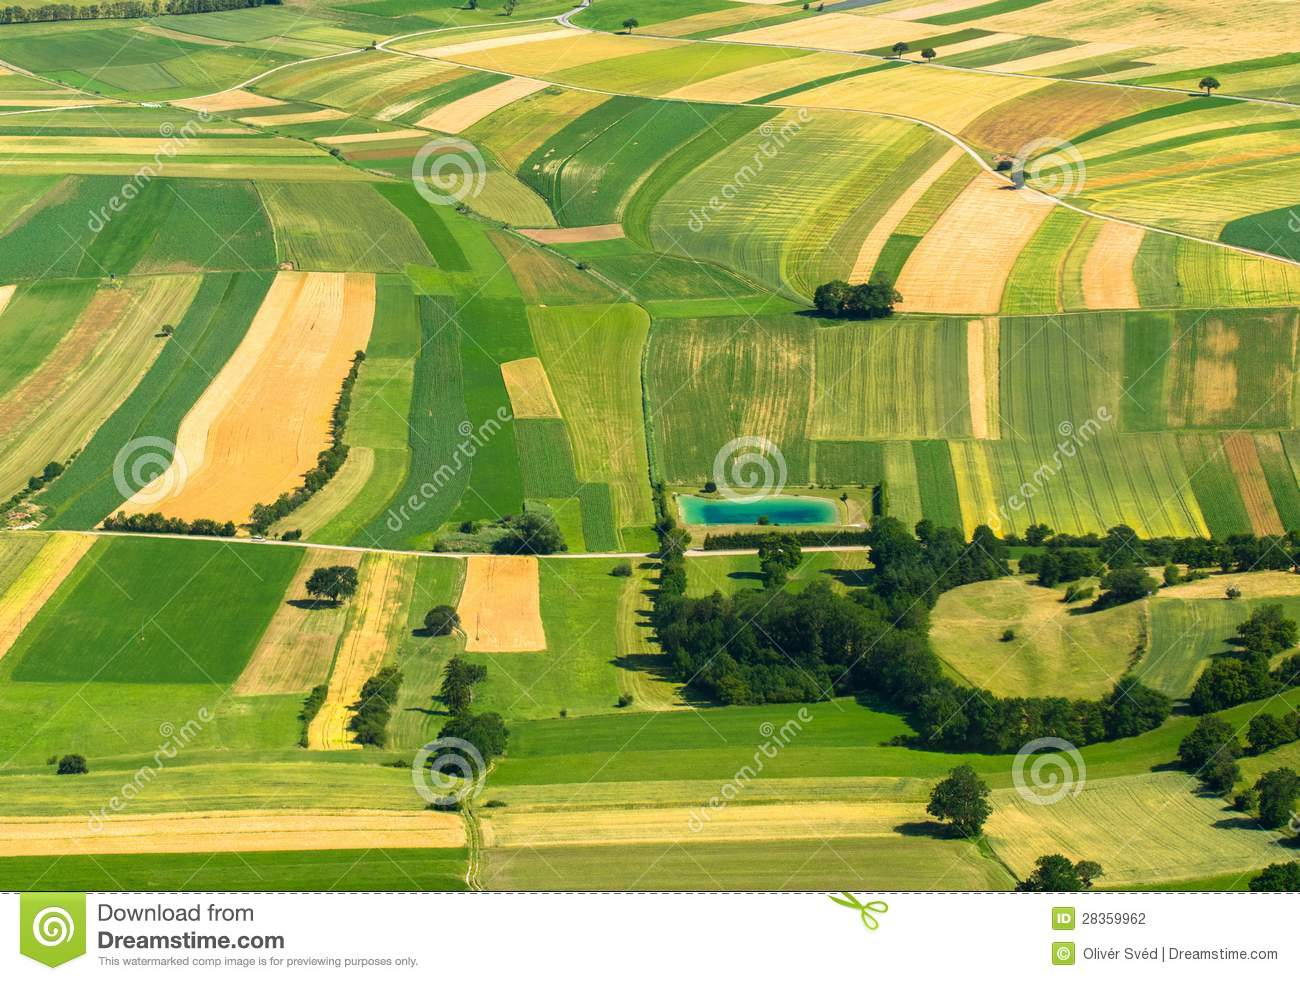 Vue a rienne de zone agricole photographie stock image for Zone agricole